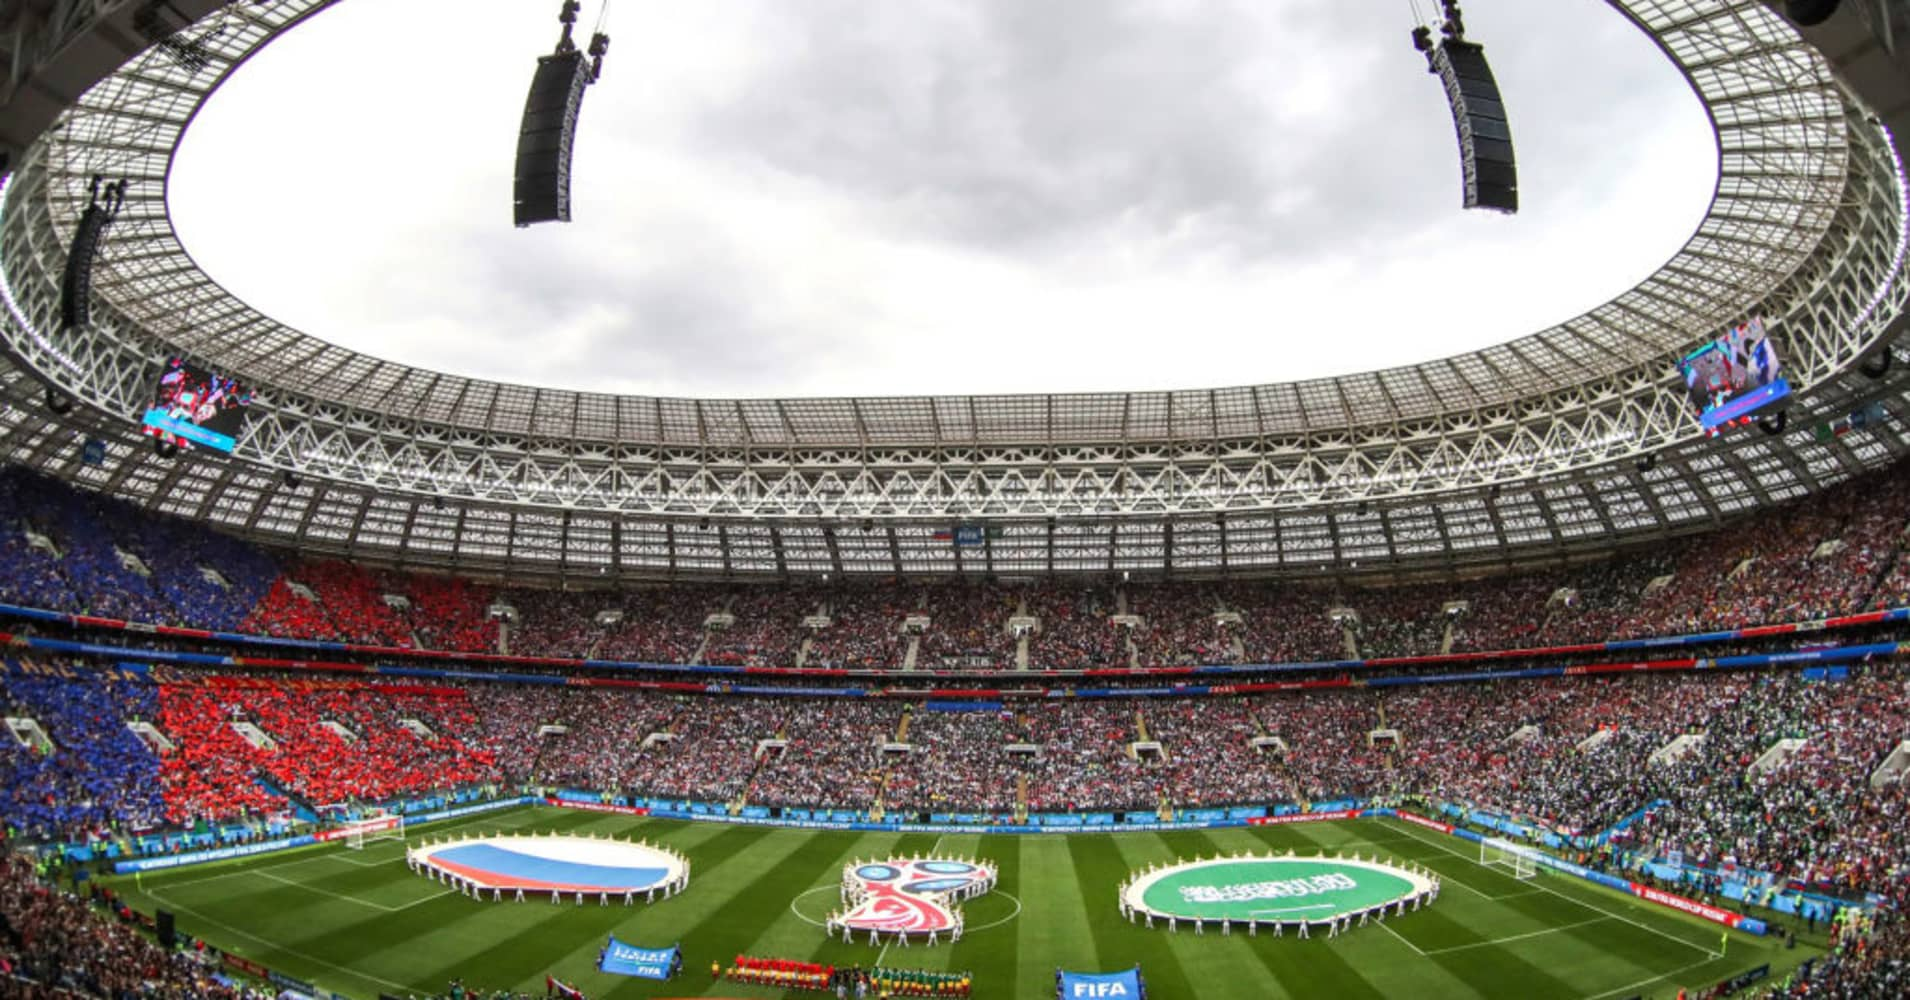 World Cup 2018 breaks viewing records across streaming platforms as soccer fans tune in